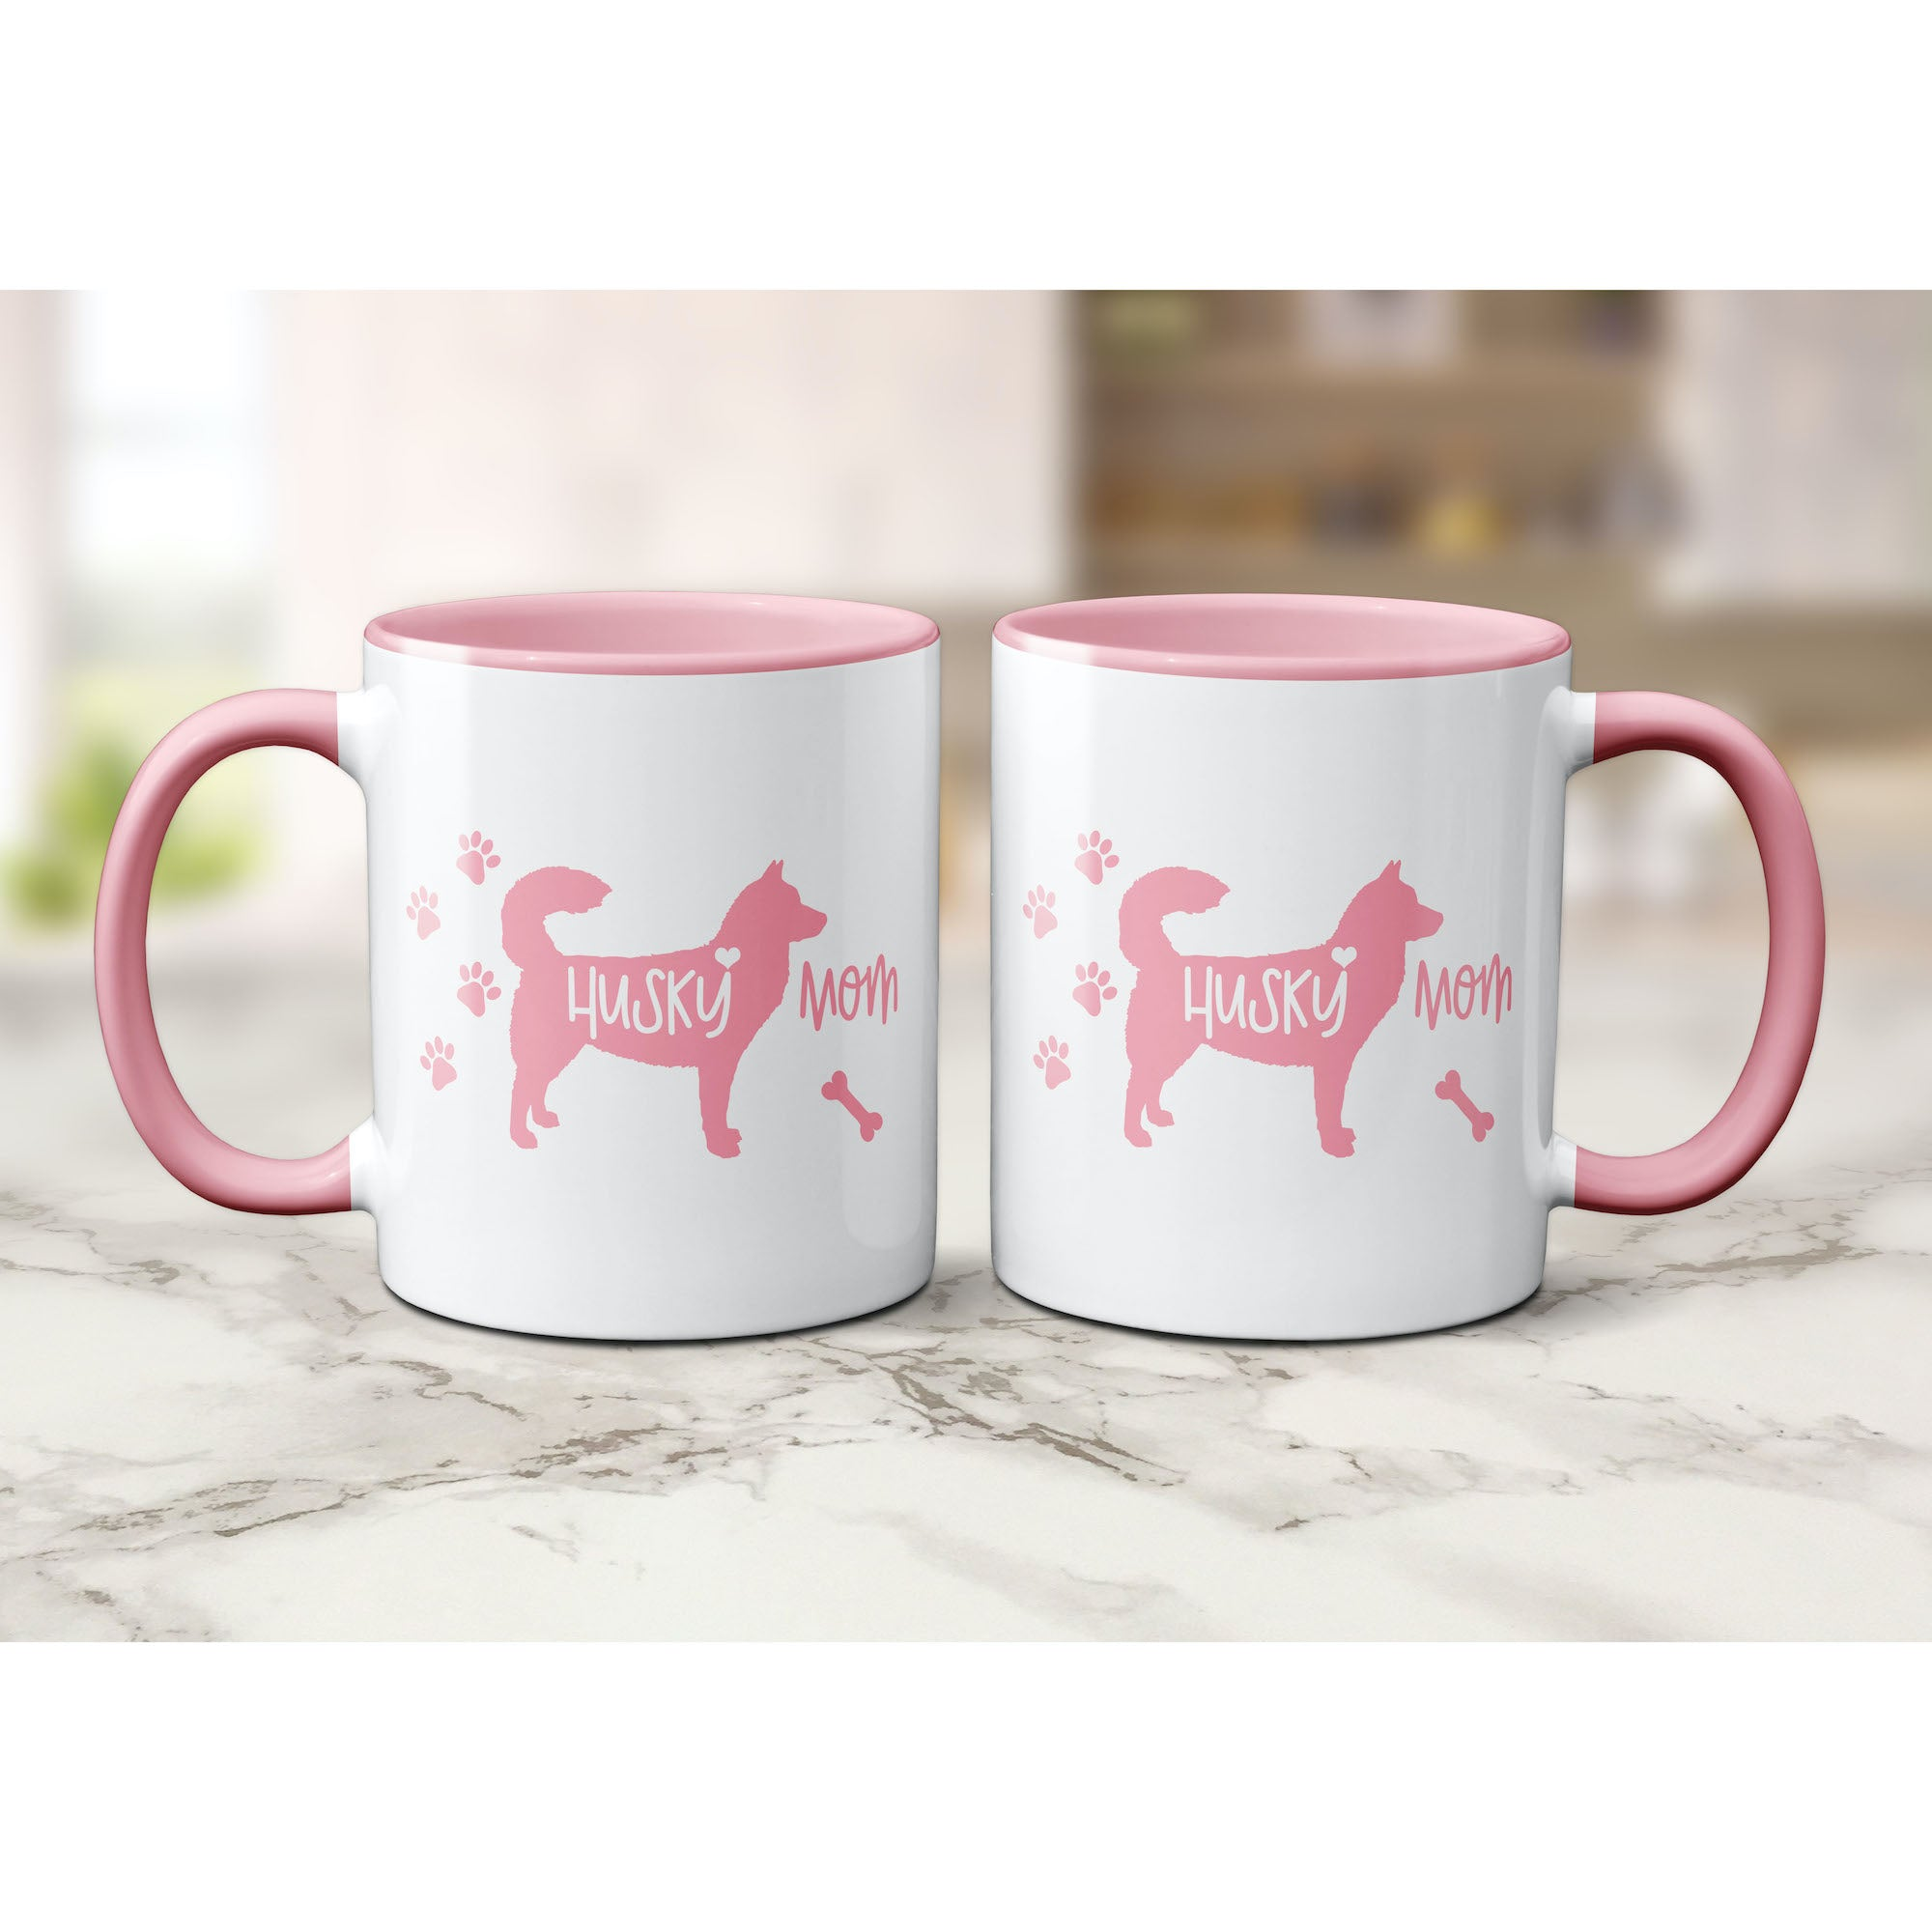 Funny Husky Mug, Husky Mom, Husky Lover Gift, Cute Husky Graphic, Coffee Mug